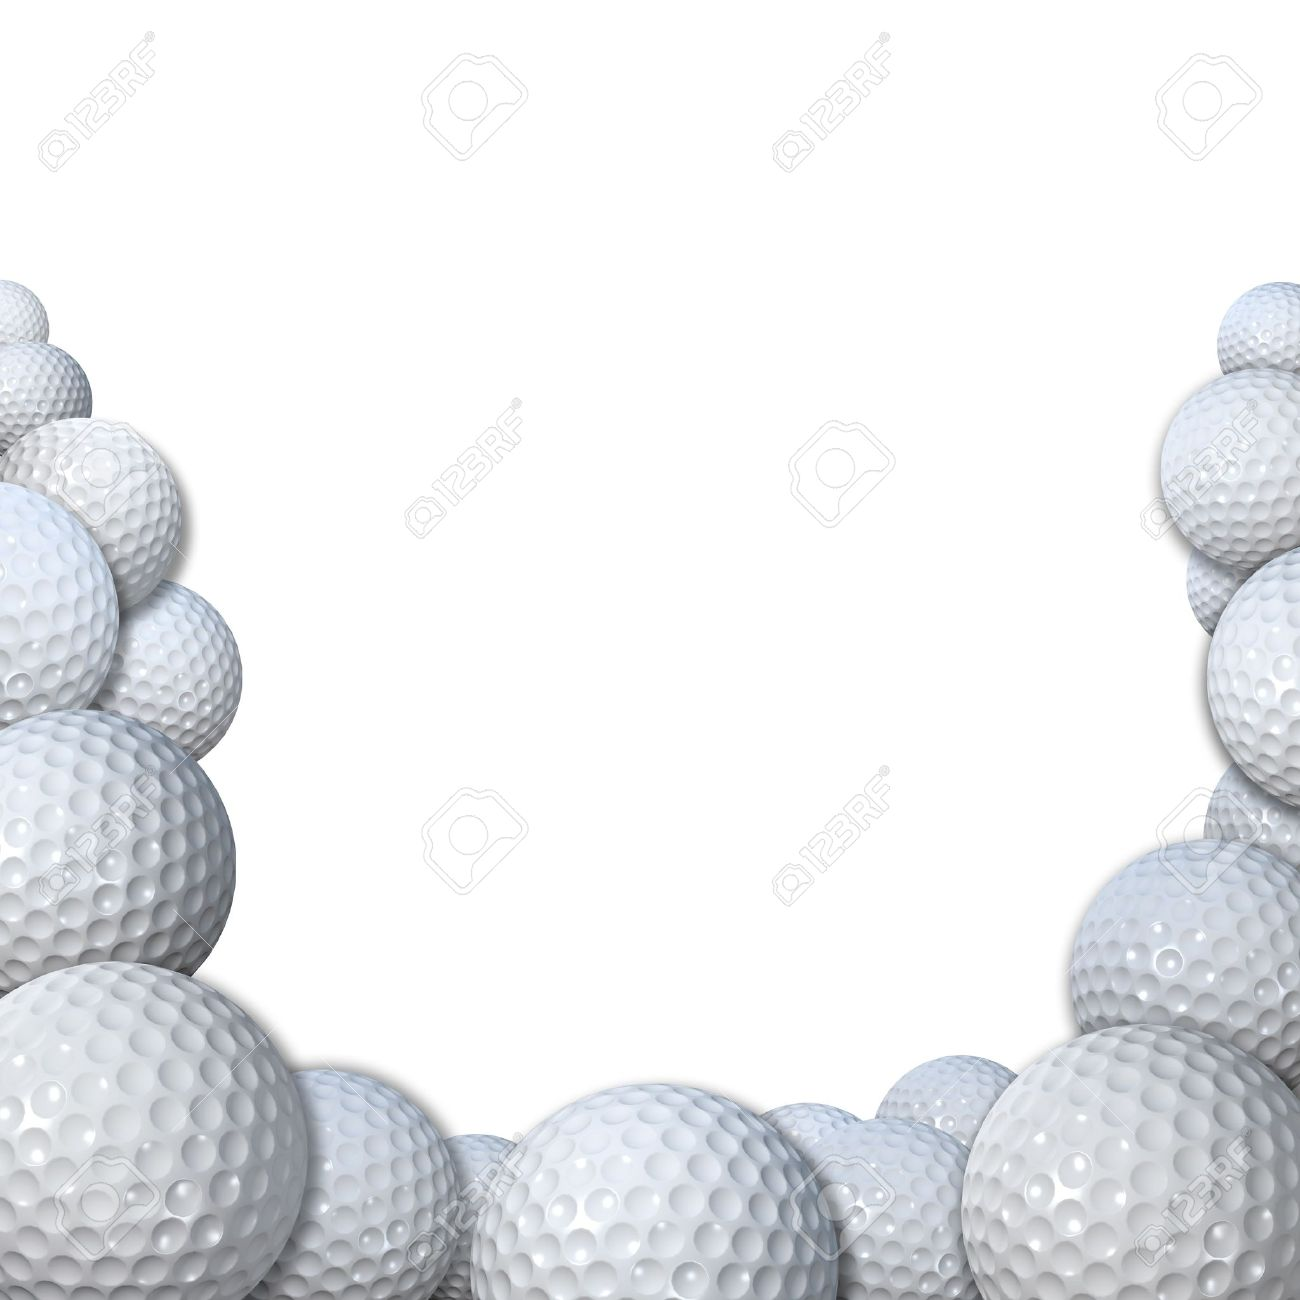 Free Golf Clipart Borders.